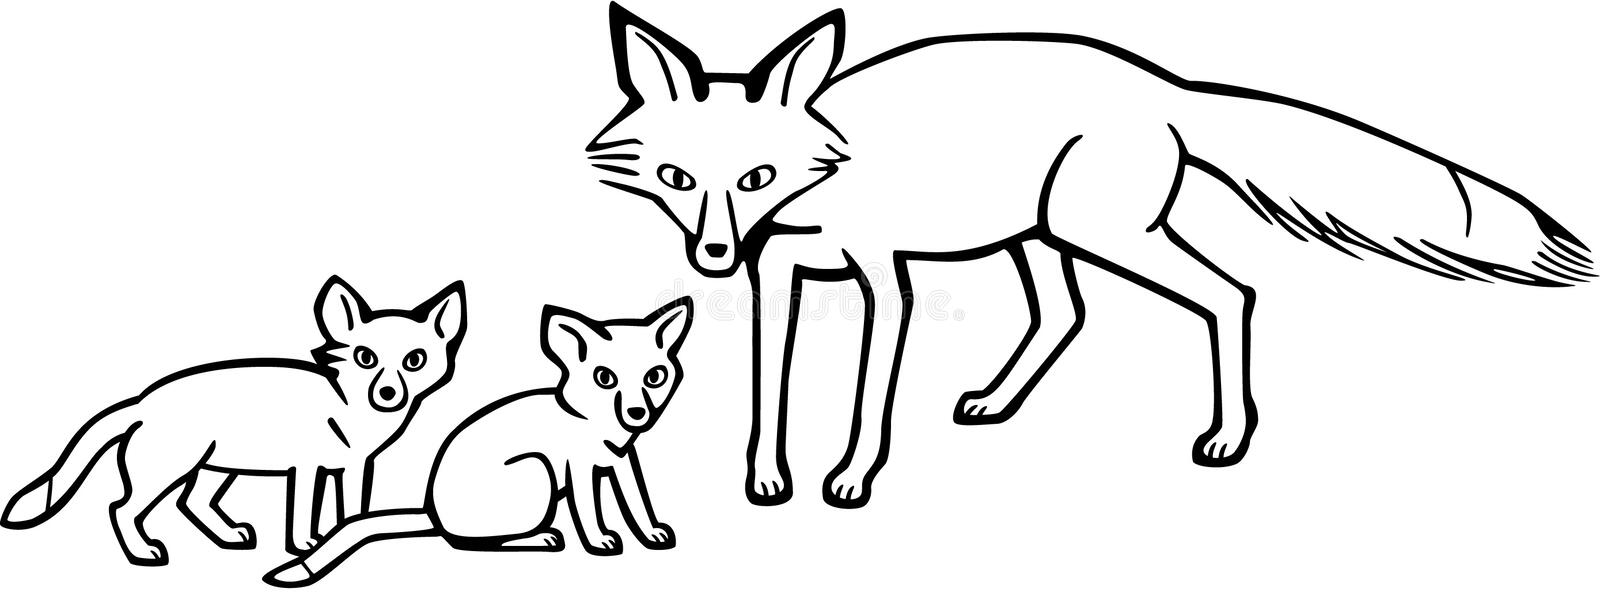 Mother Fox and Cubs. Line drawing a mother fox and her two cubs royalty free illustration